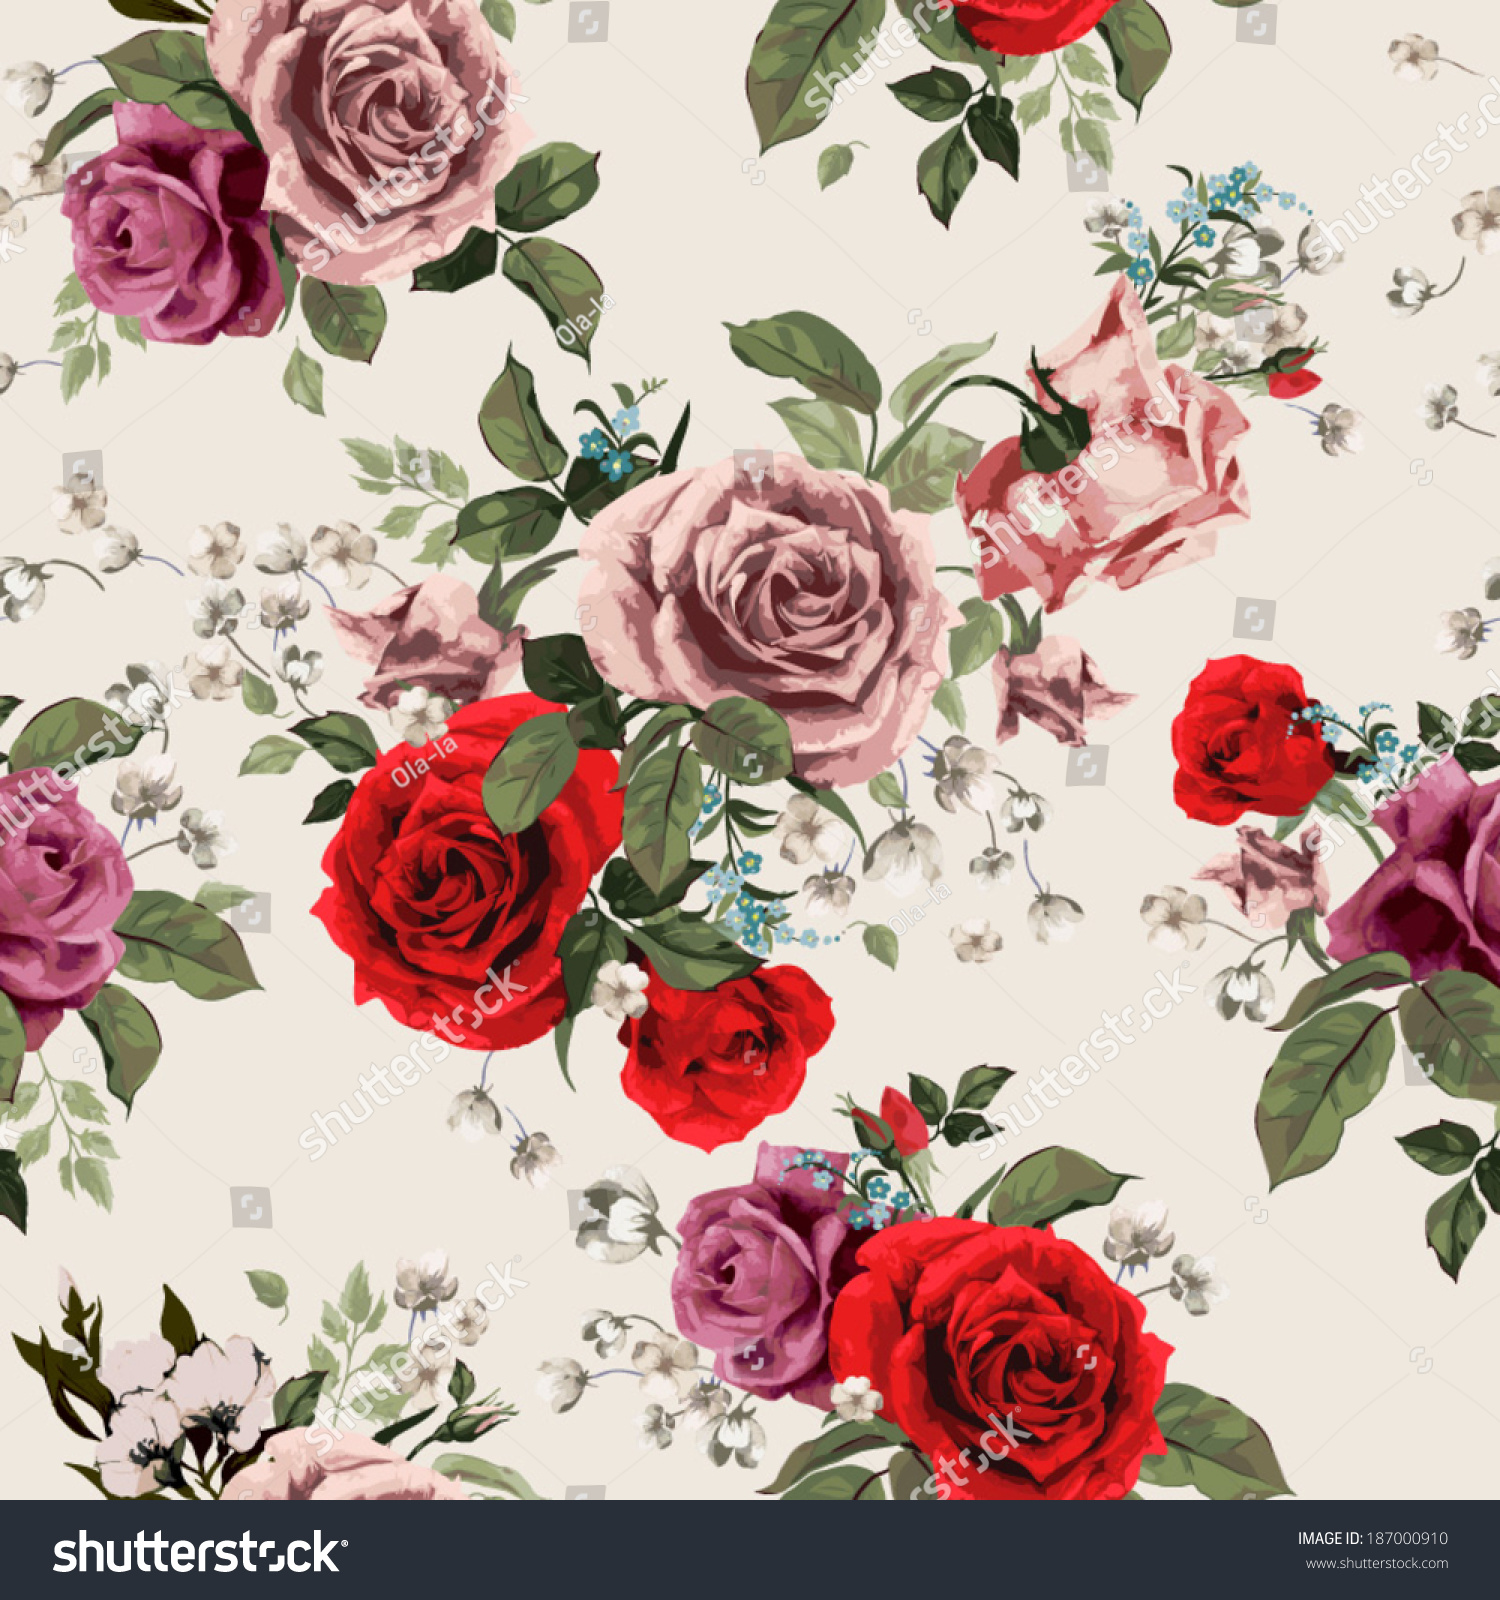 Seamless pink floral pattern - photo#25